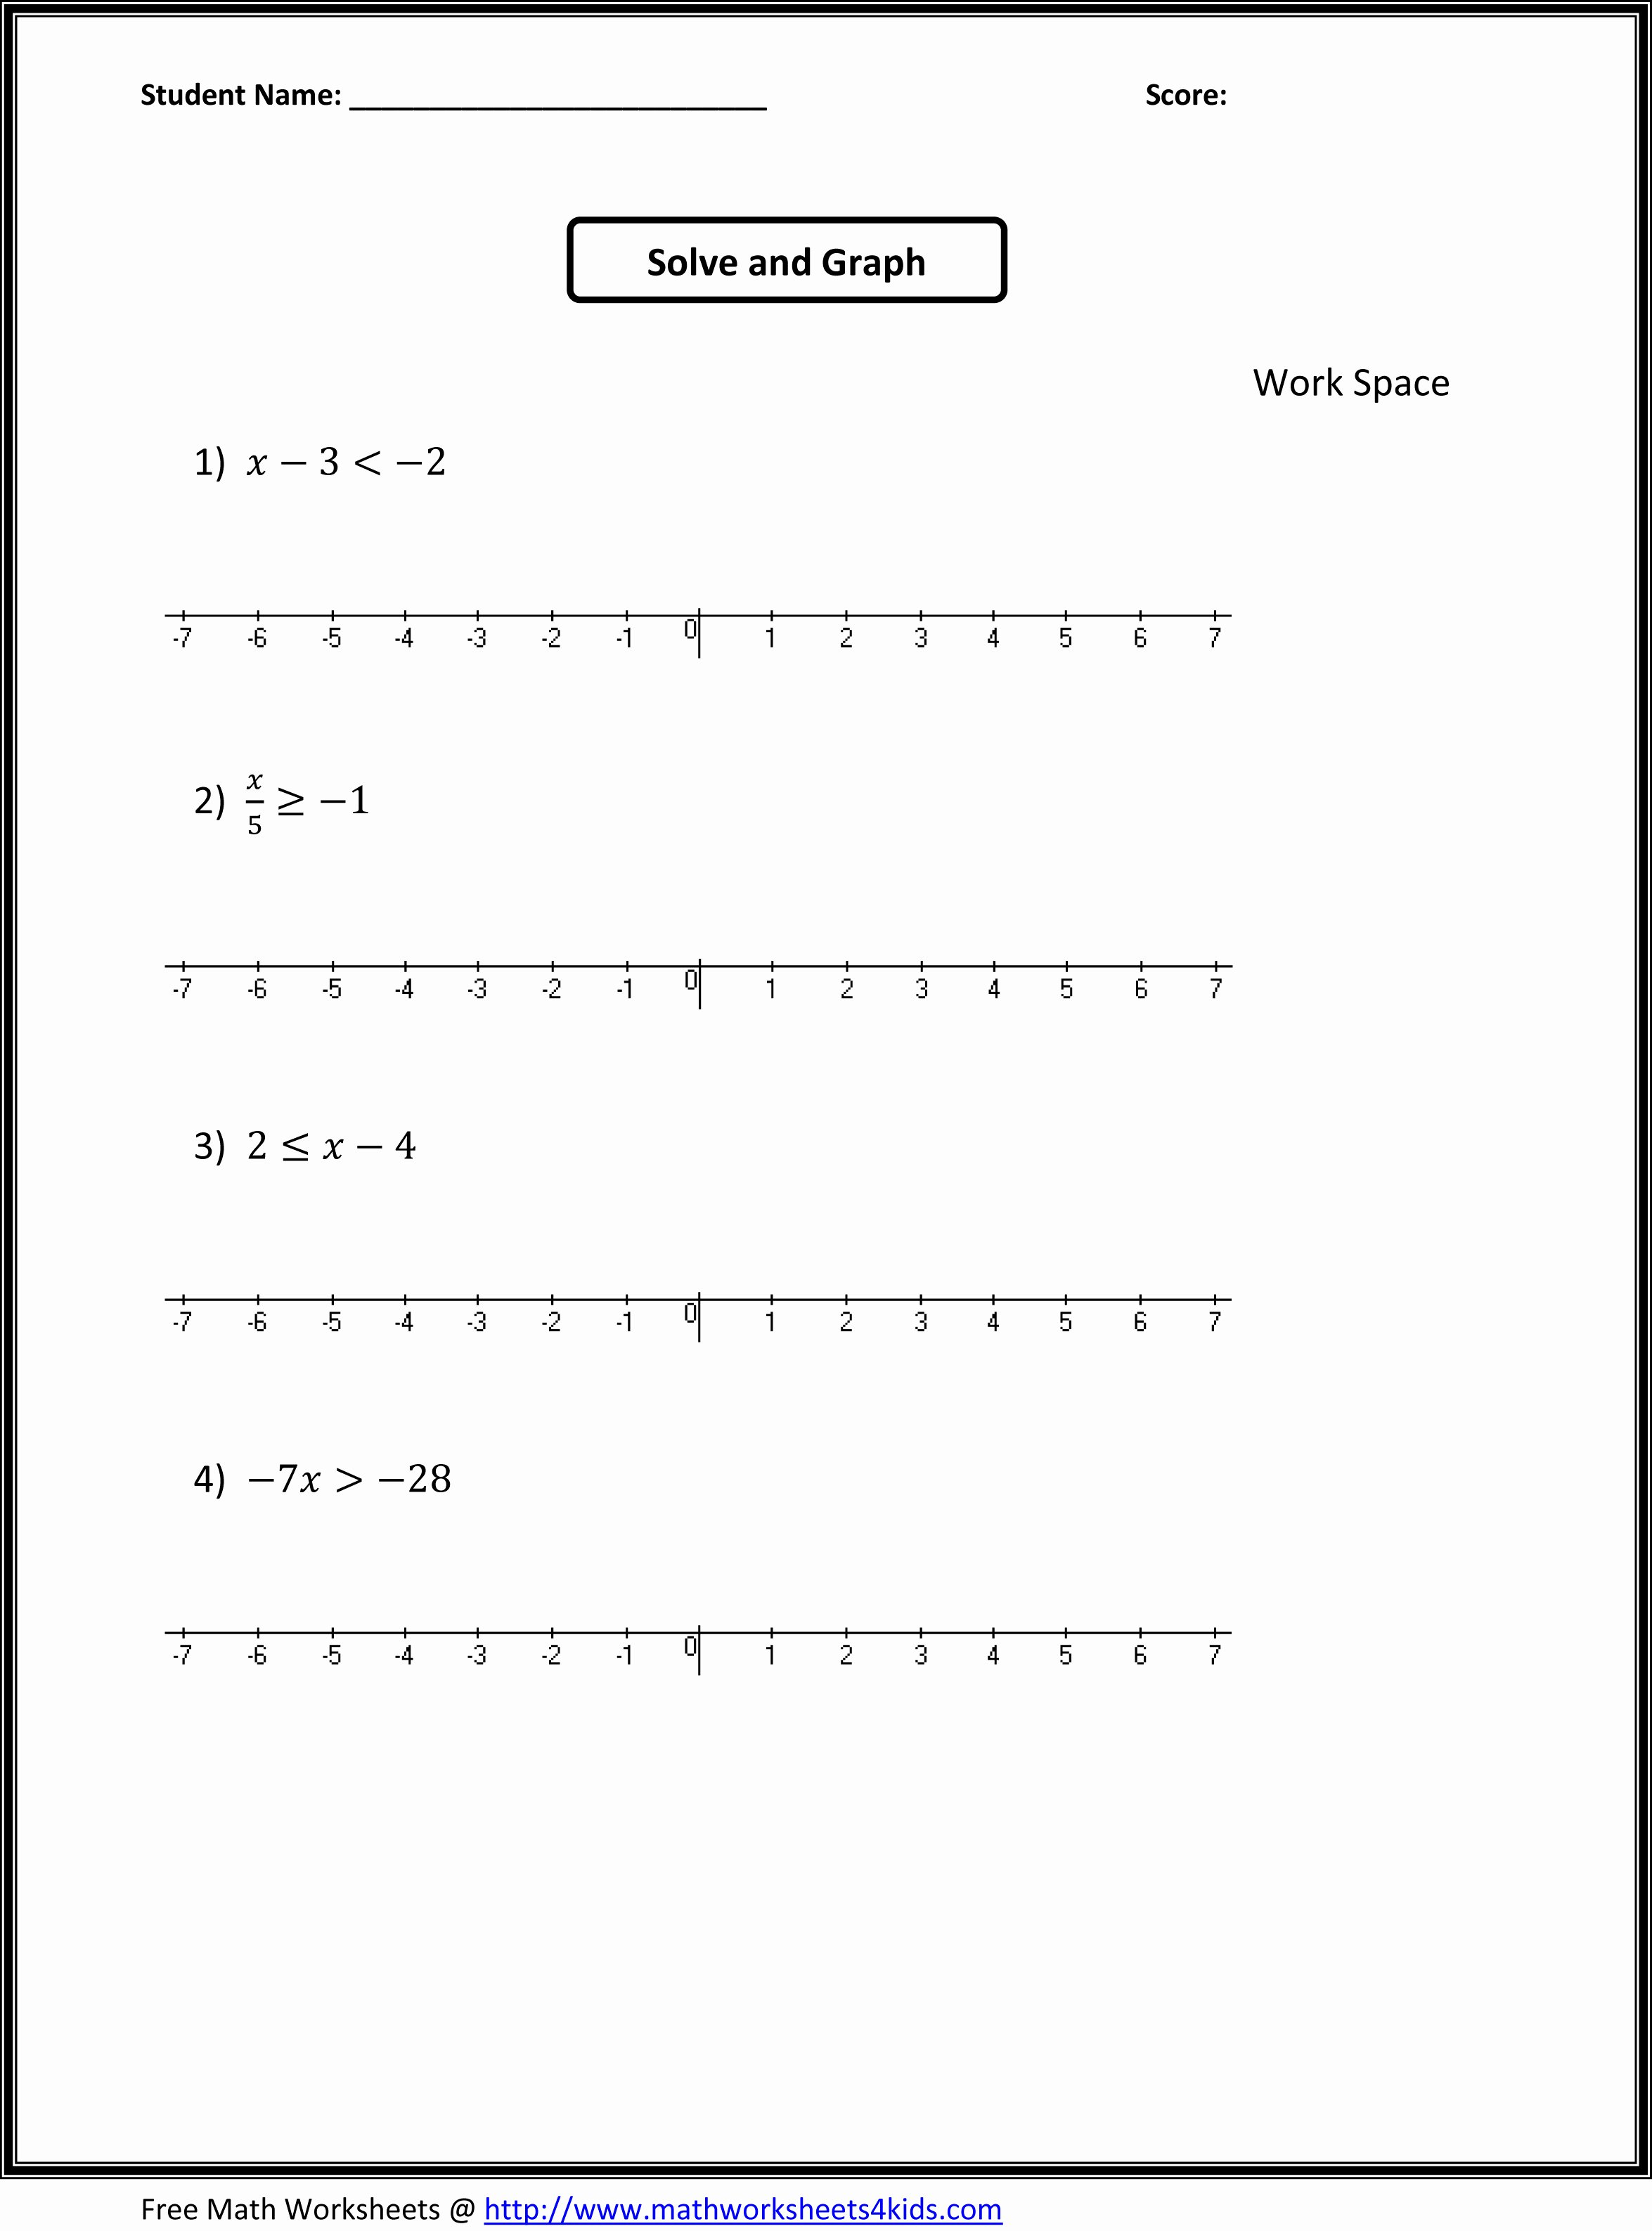 Triangle Inequality theorem Worksheet New Download 7th Grade Math Worksheets